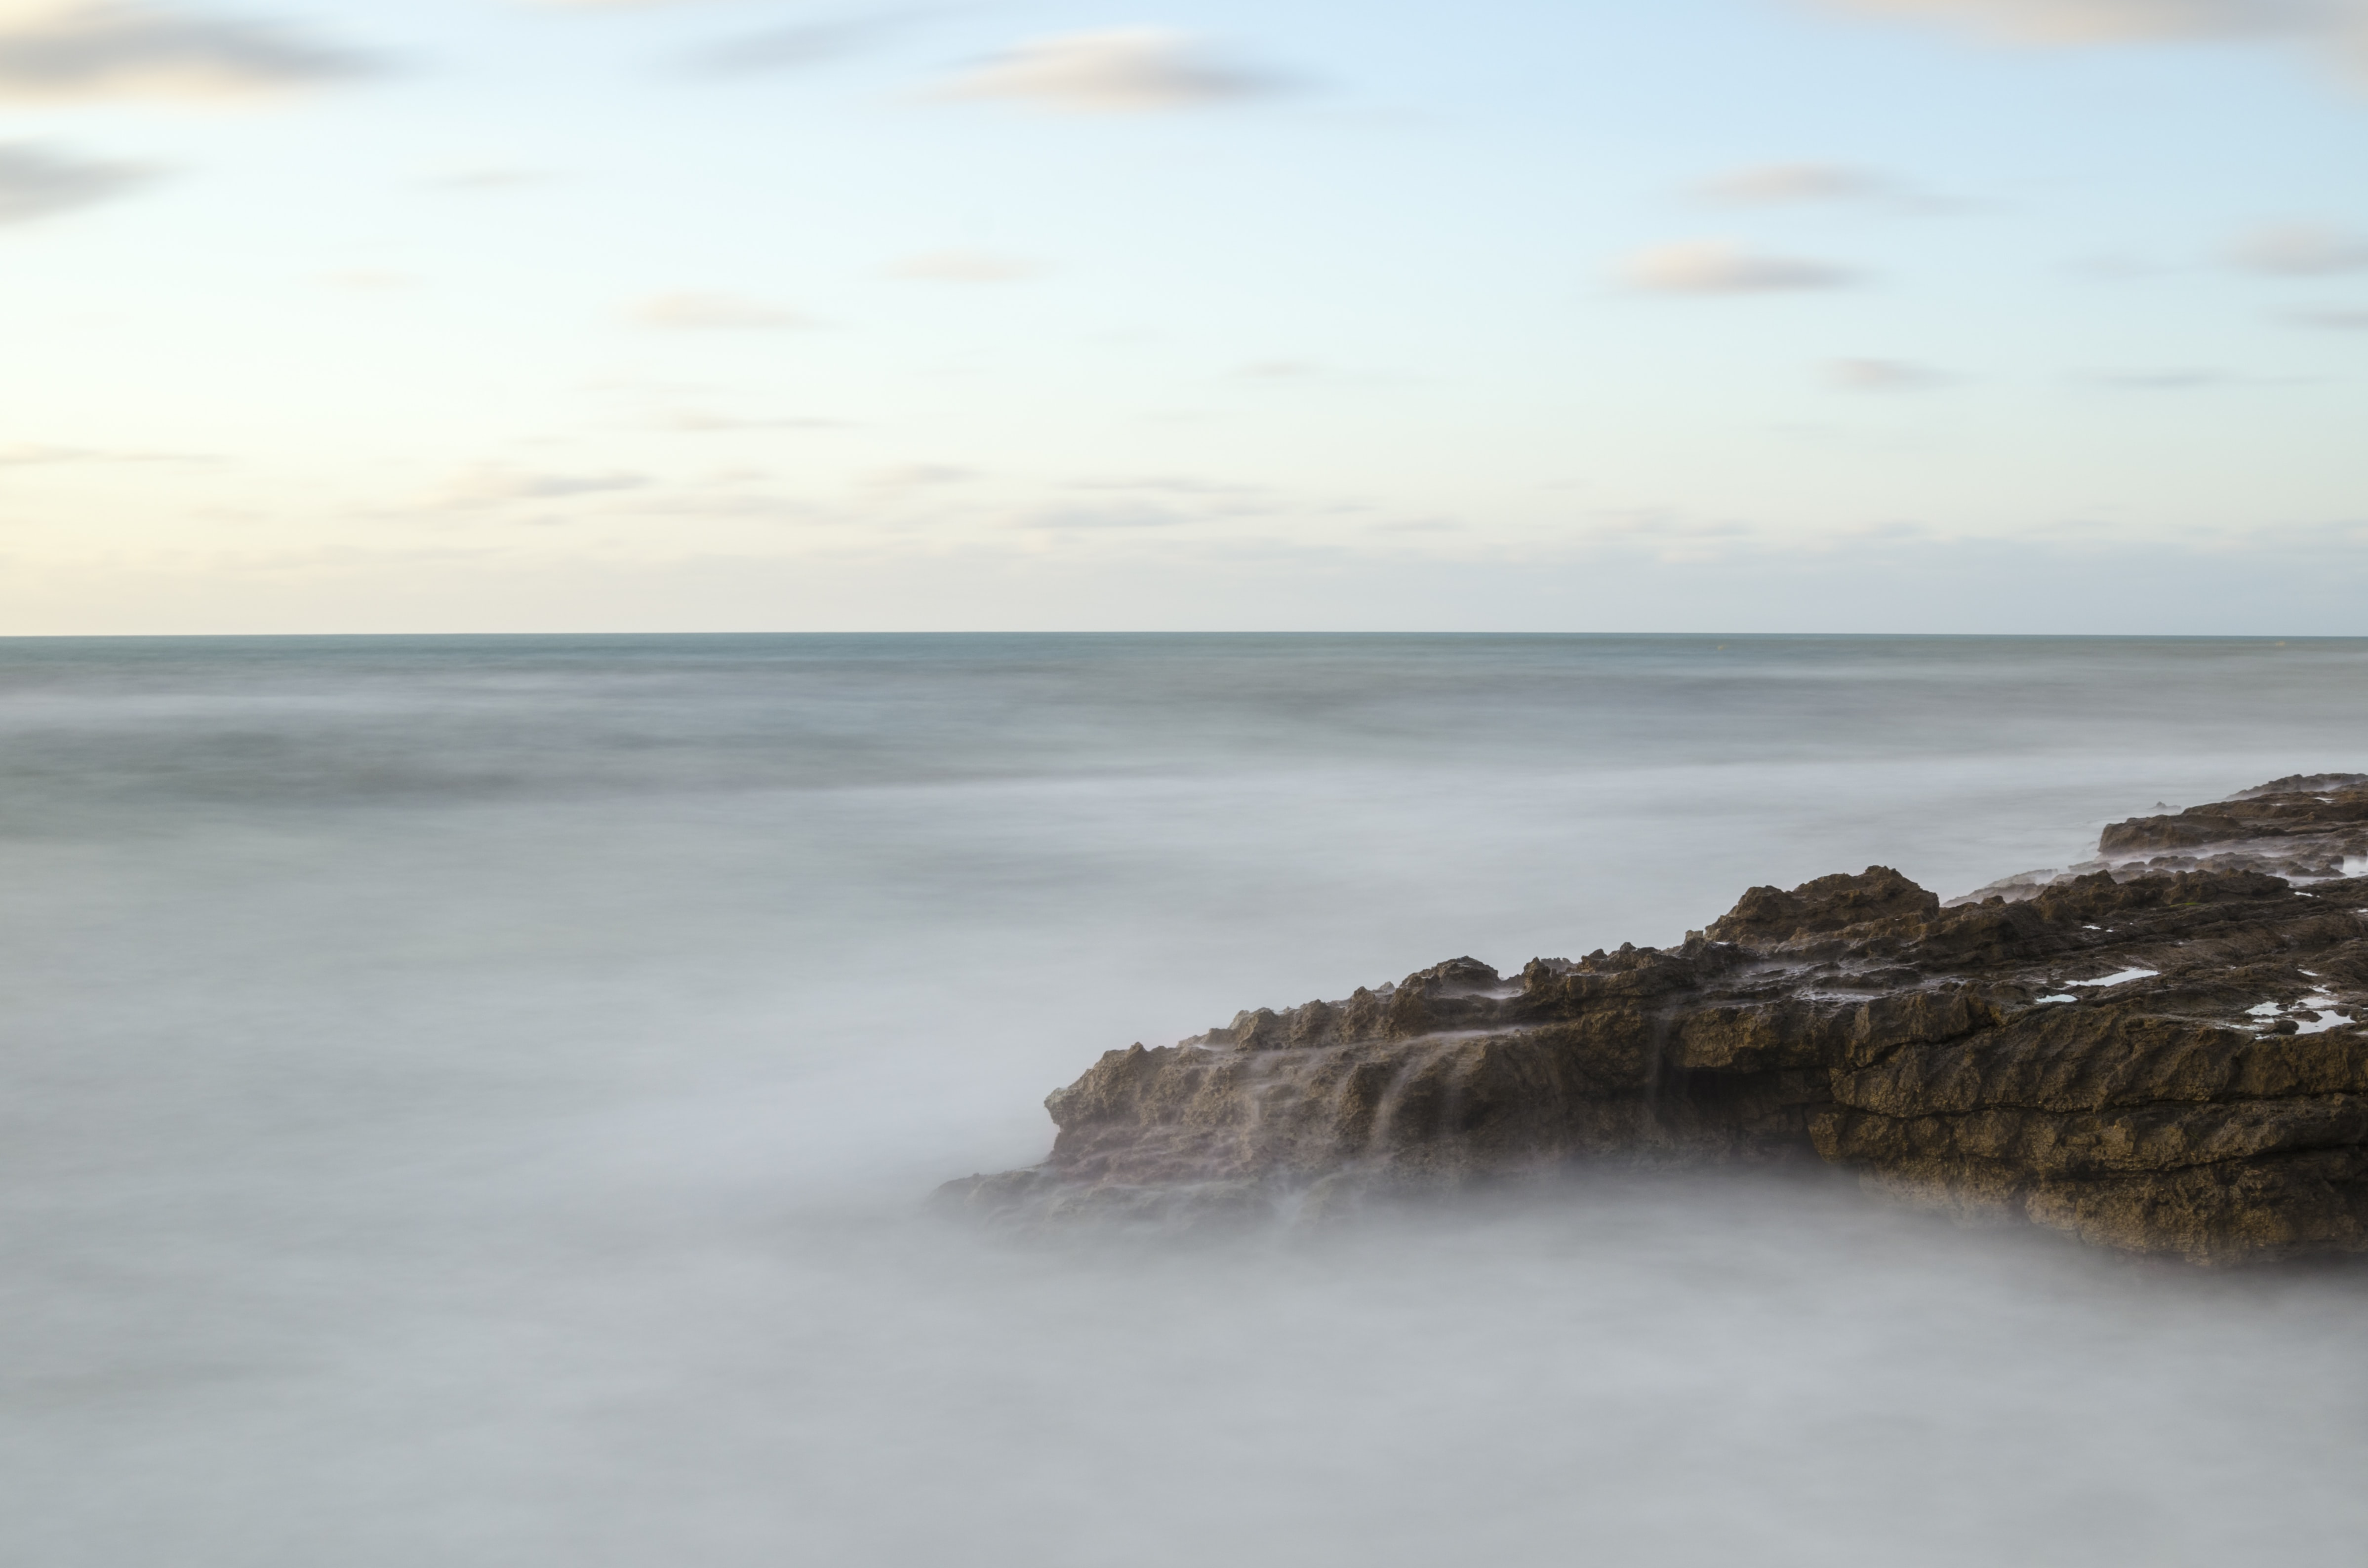 Rocky mountainside on the seashore shrouded in clouds